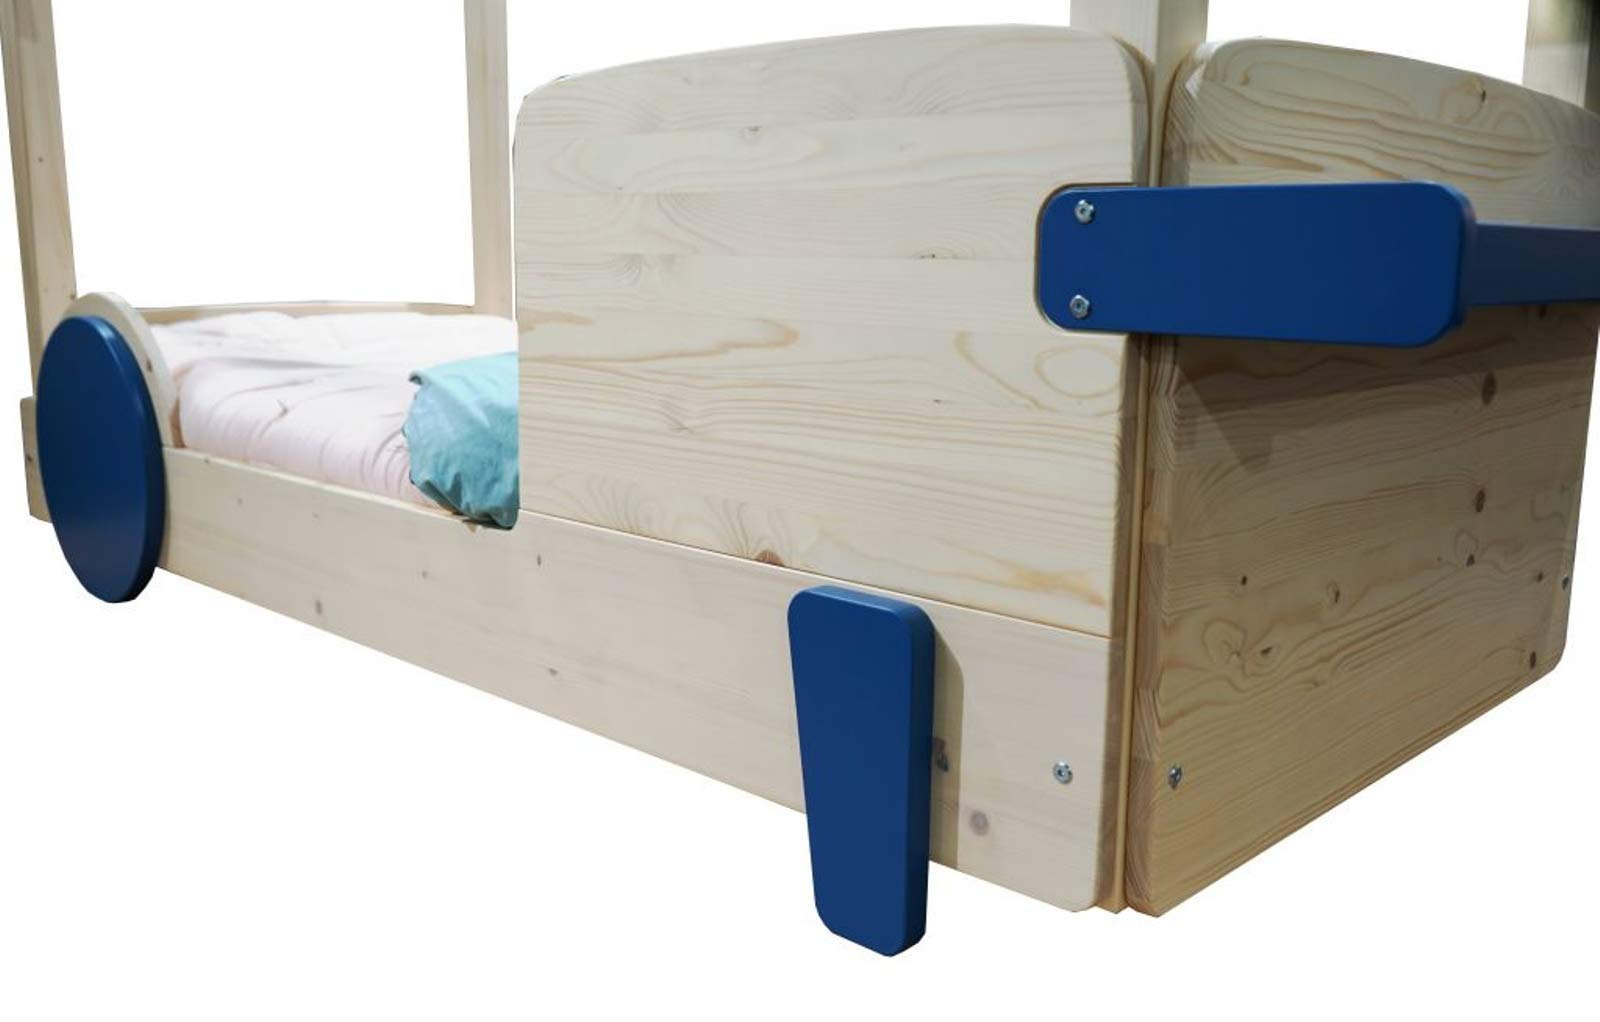 Hyggelia House wooden bed Merkury for children, for teenagers, MDF accessories, furniture for the bedroom (80 x 180cm, Painted (Choose Color)) Hyggelia Additional kits to convert into a bunk bed, or to receive the pul-out bed Colour: Natural wood or Choose a color from the color palette (photo in the gallery) It is available in natural varnish and 27 water based lacquers. 6